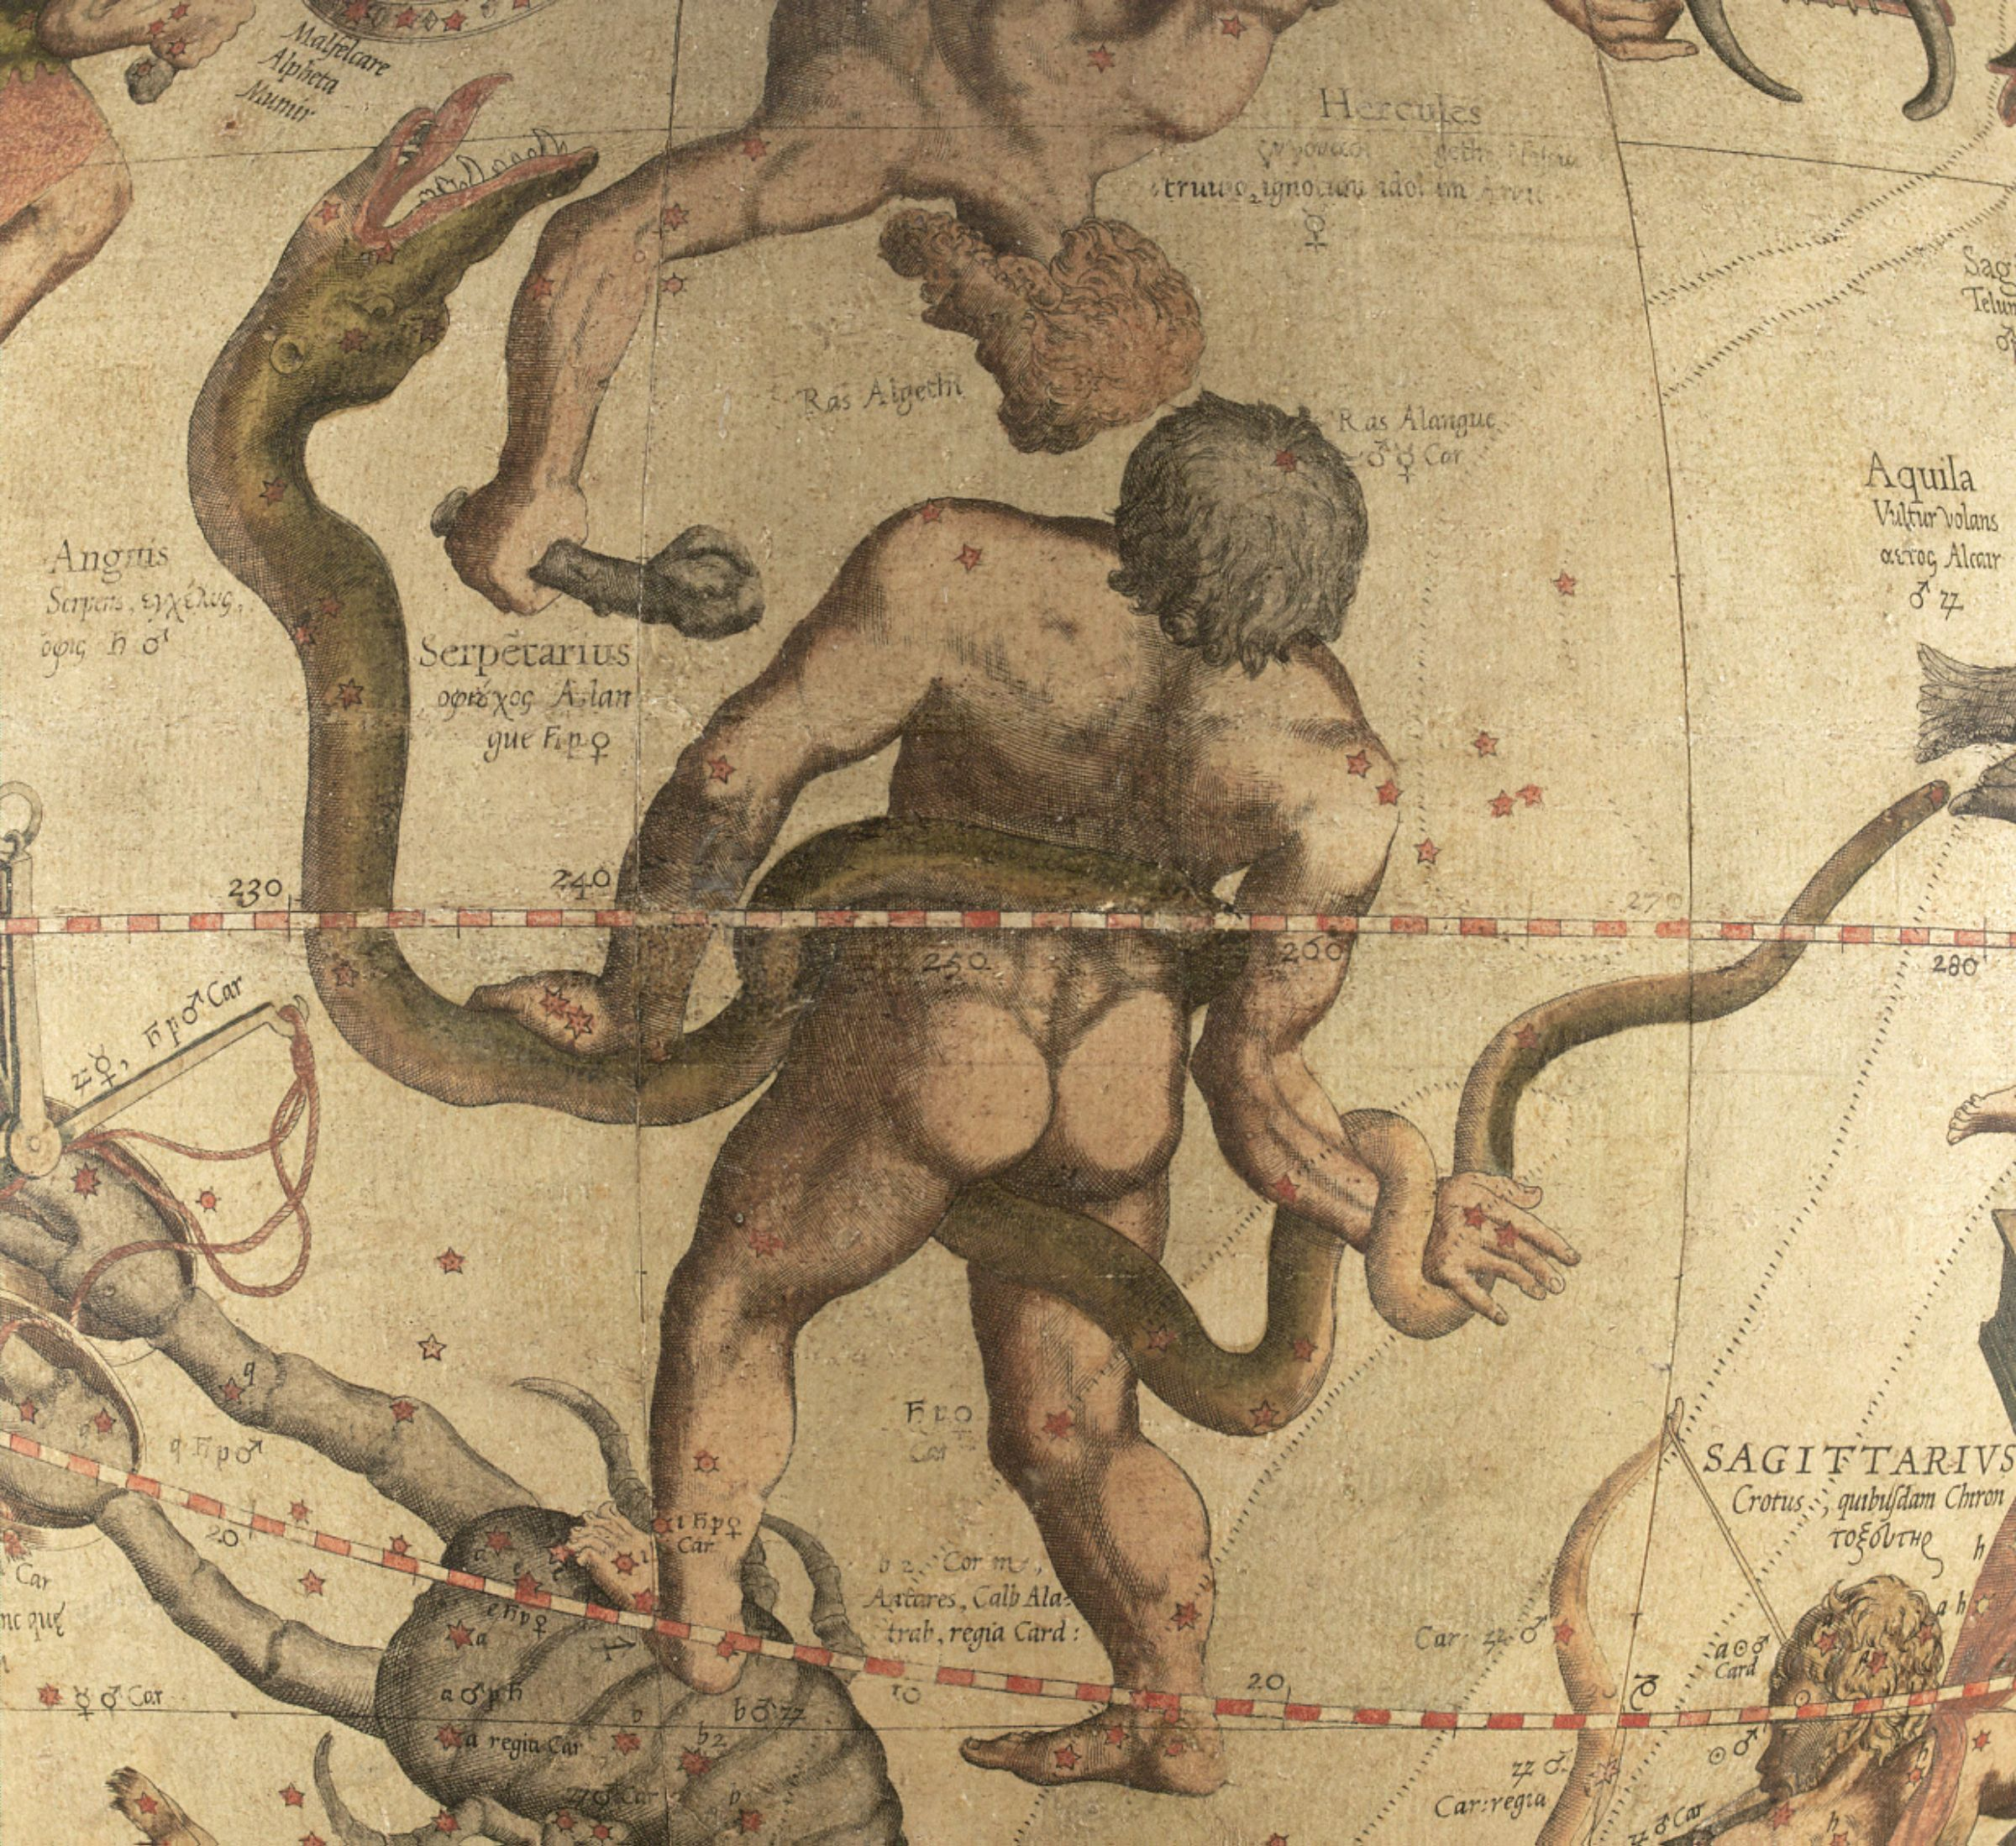 Ofiuco calpesta lo Scorpione . Da: Gerardus Mercator, Globo Celeste, 1551.  Cambridge (Mass.), The Mercator Globes at Harvard Map Collection, via Wikimedia Commons